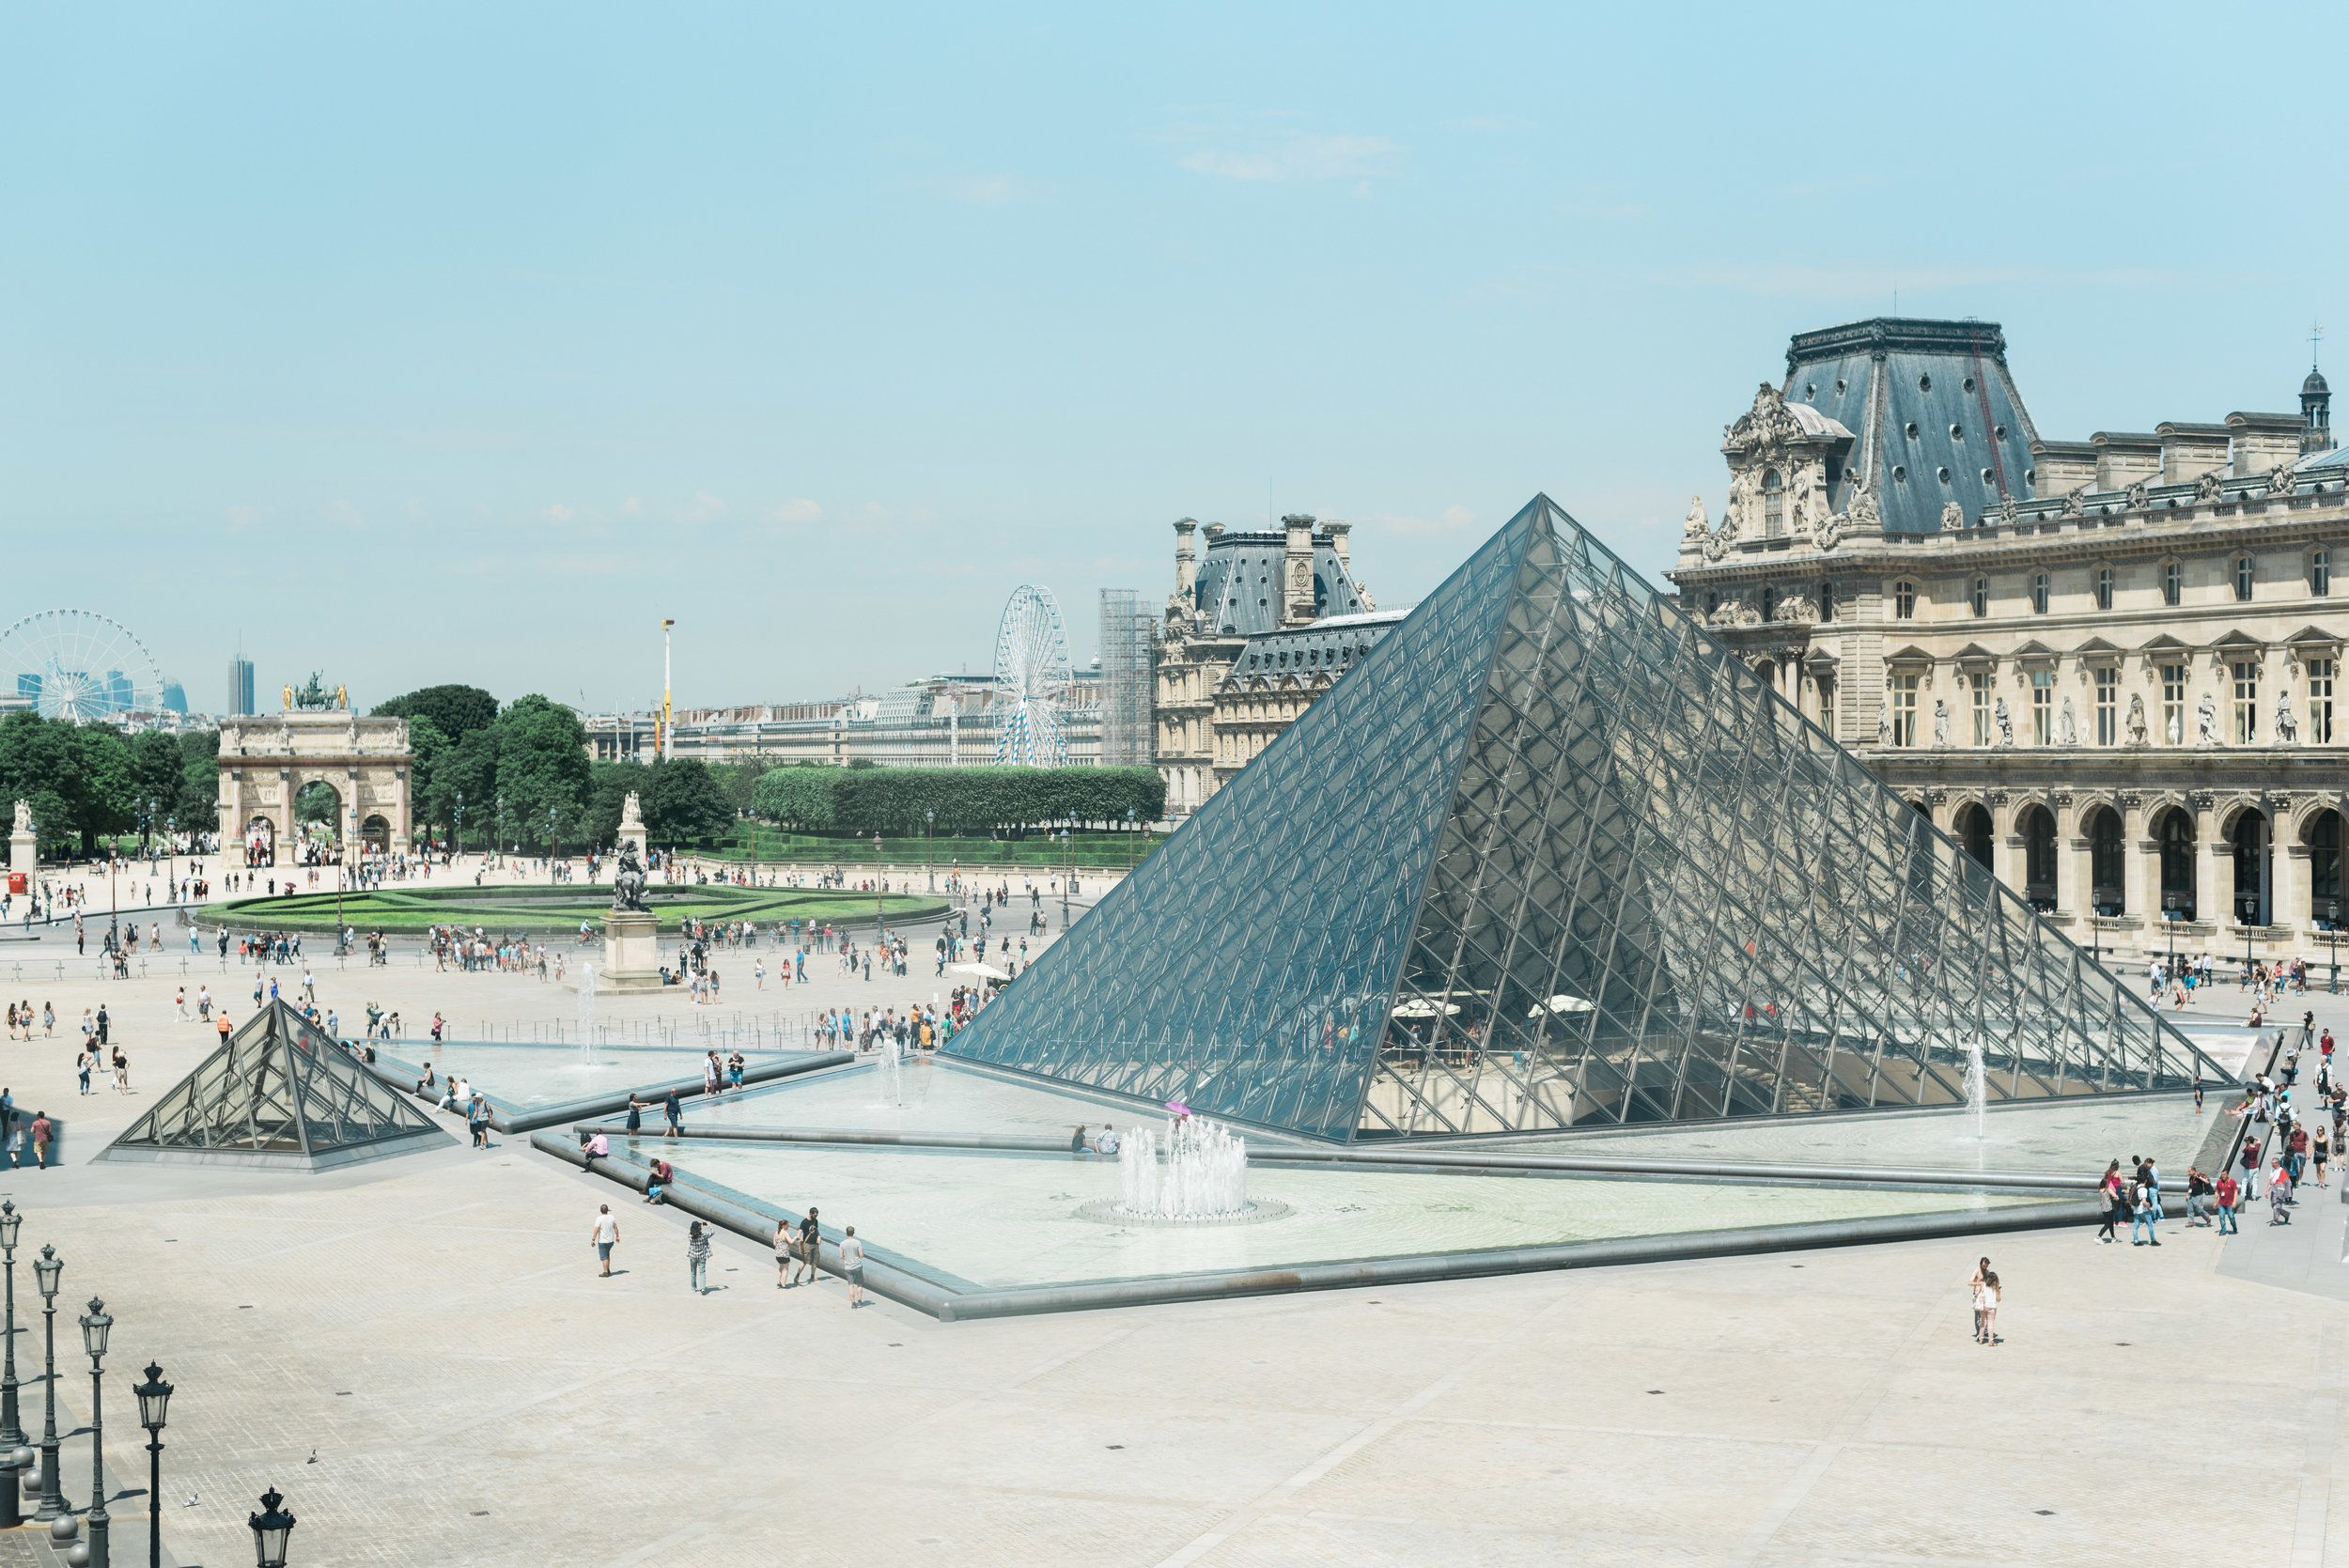 View of the courtyard from inside the Louvre